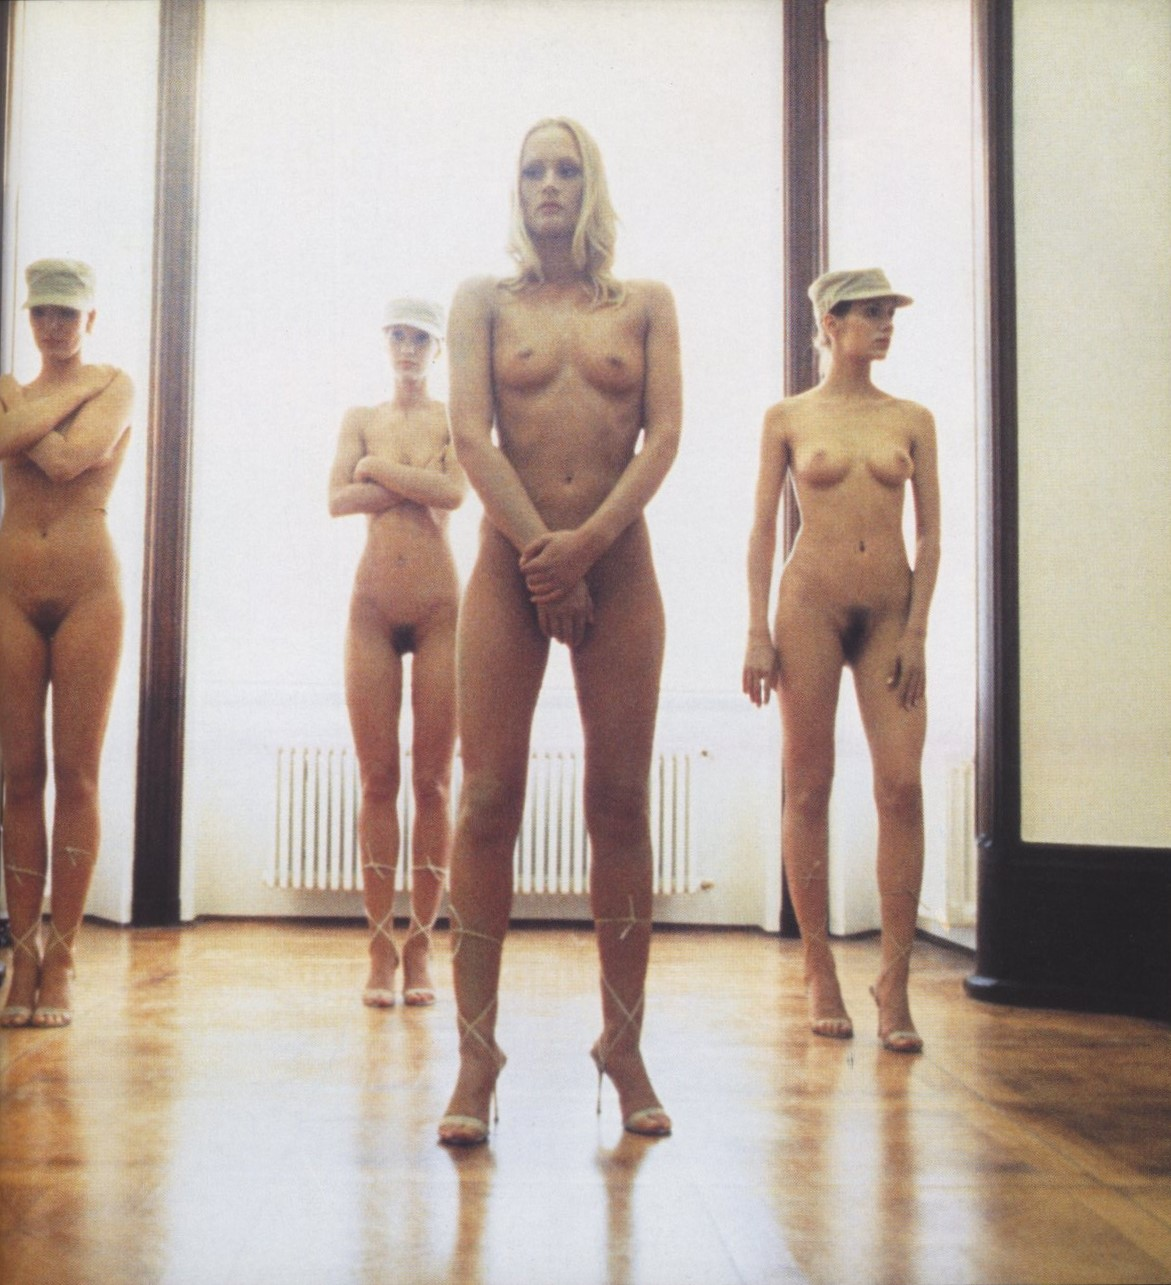 vanessa beecroft performance 1998 photography annika larsson flash art n 213 december 1998 january 1999